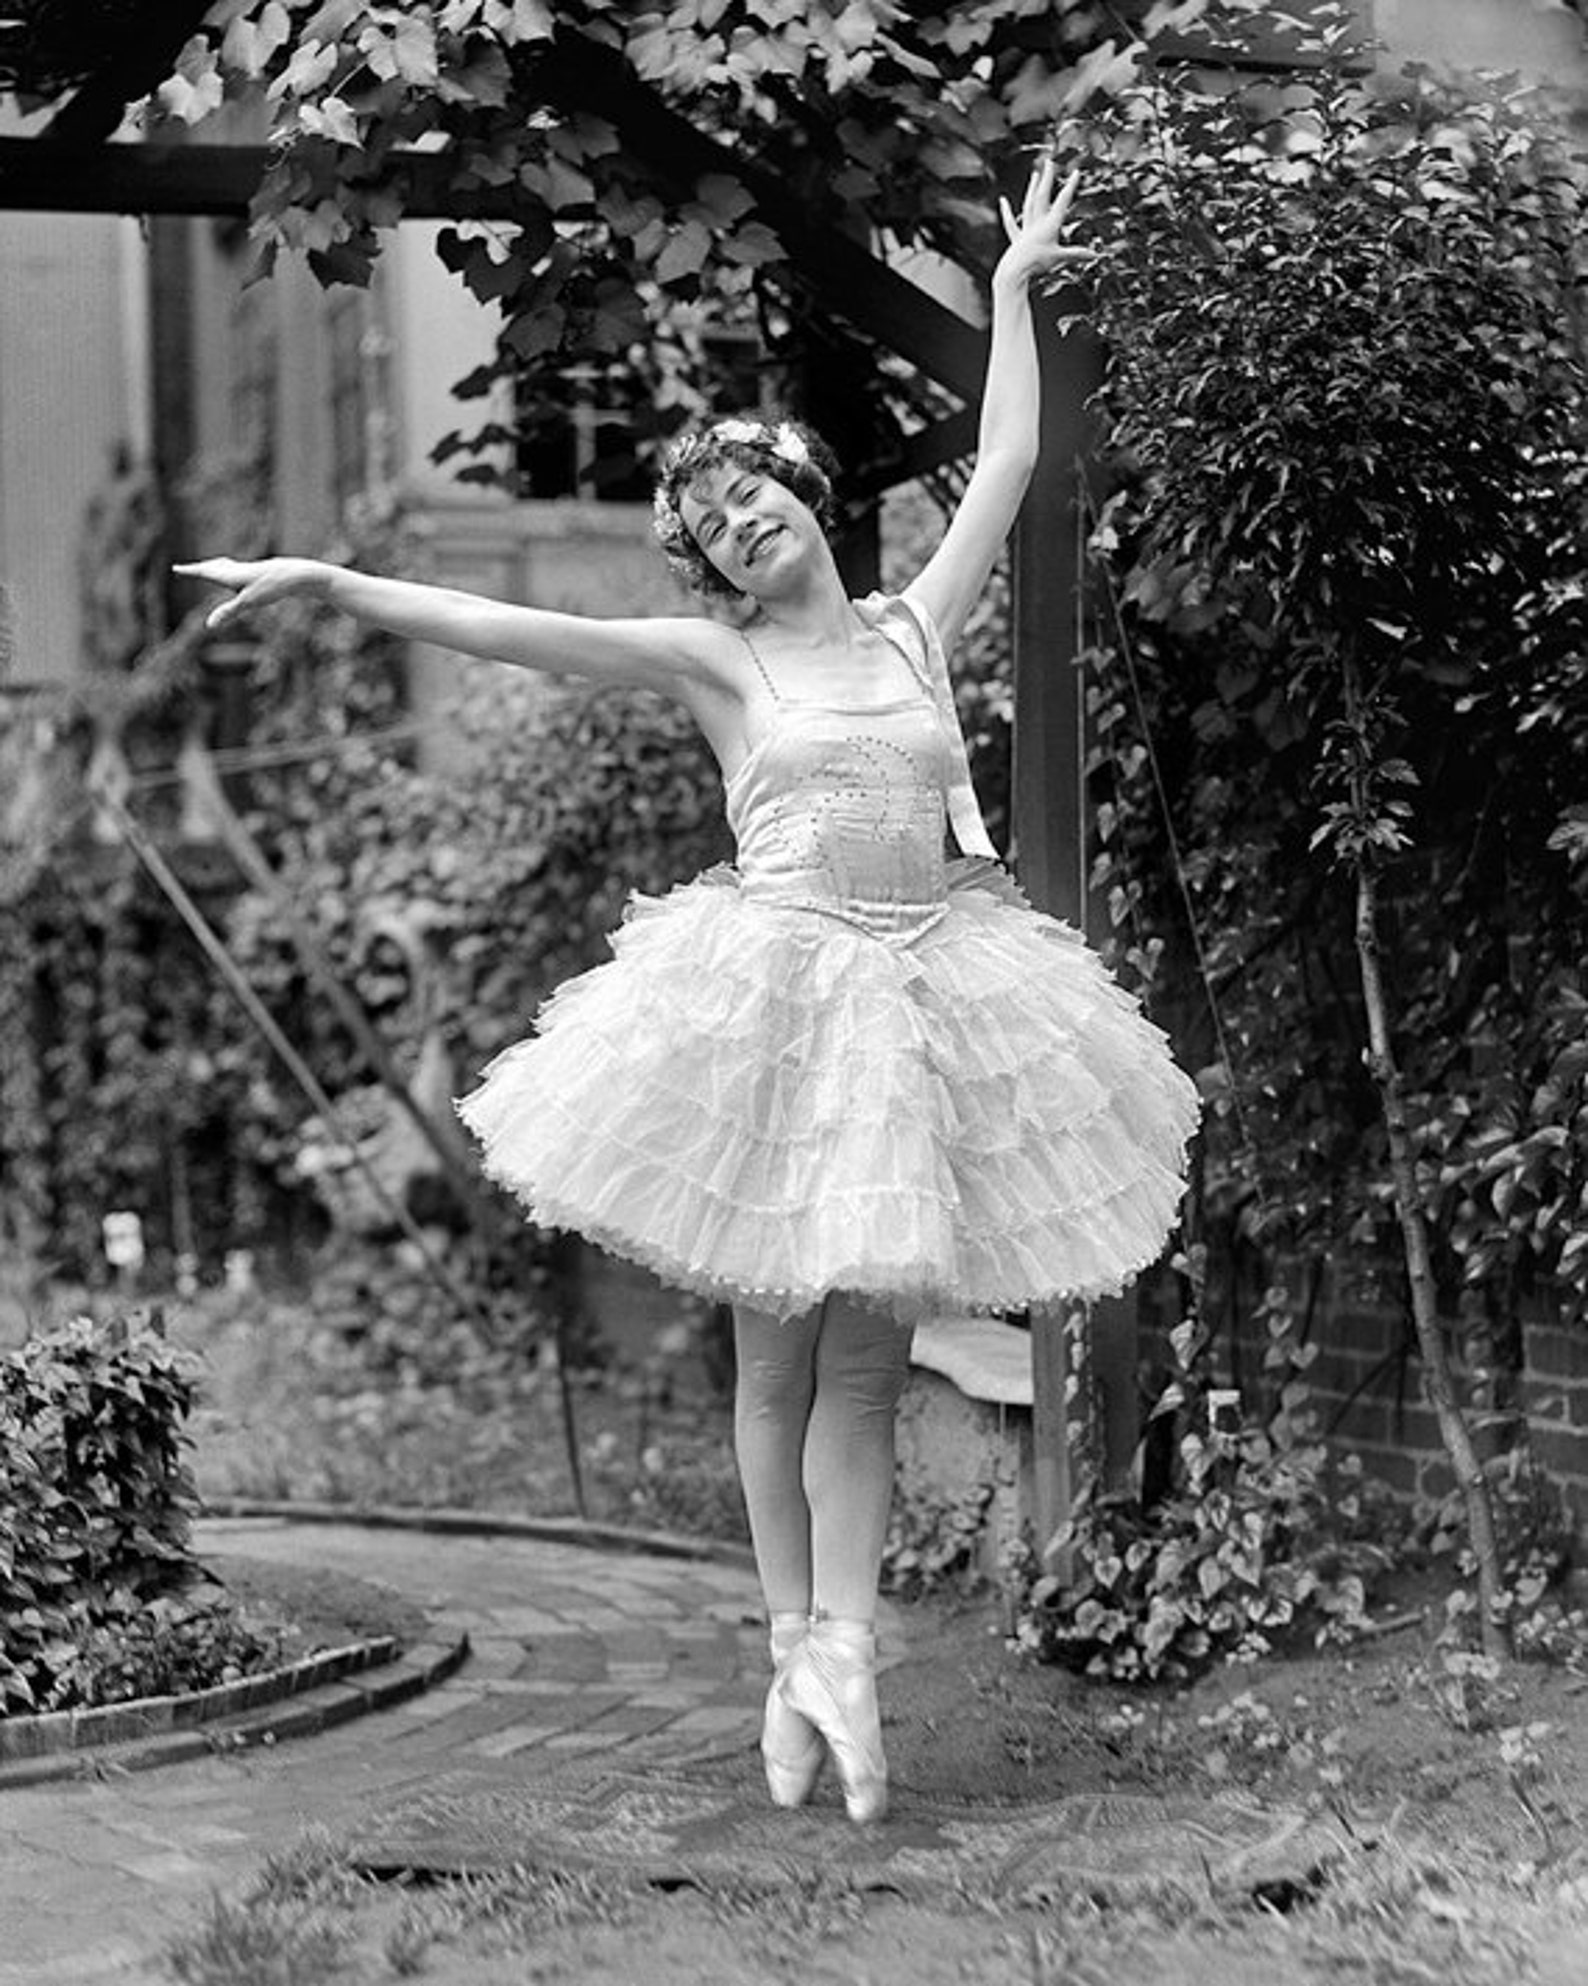 vintage image ballet dancer on her toes - 8 x 10 - instant download